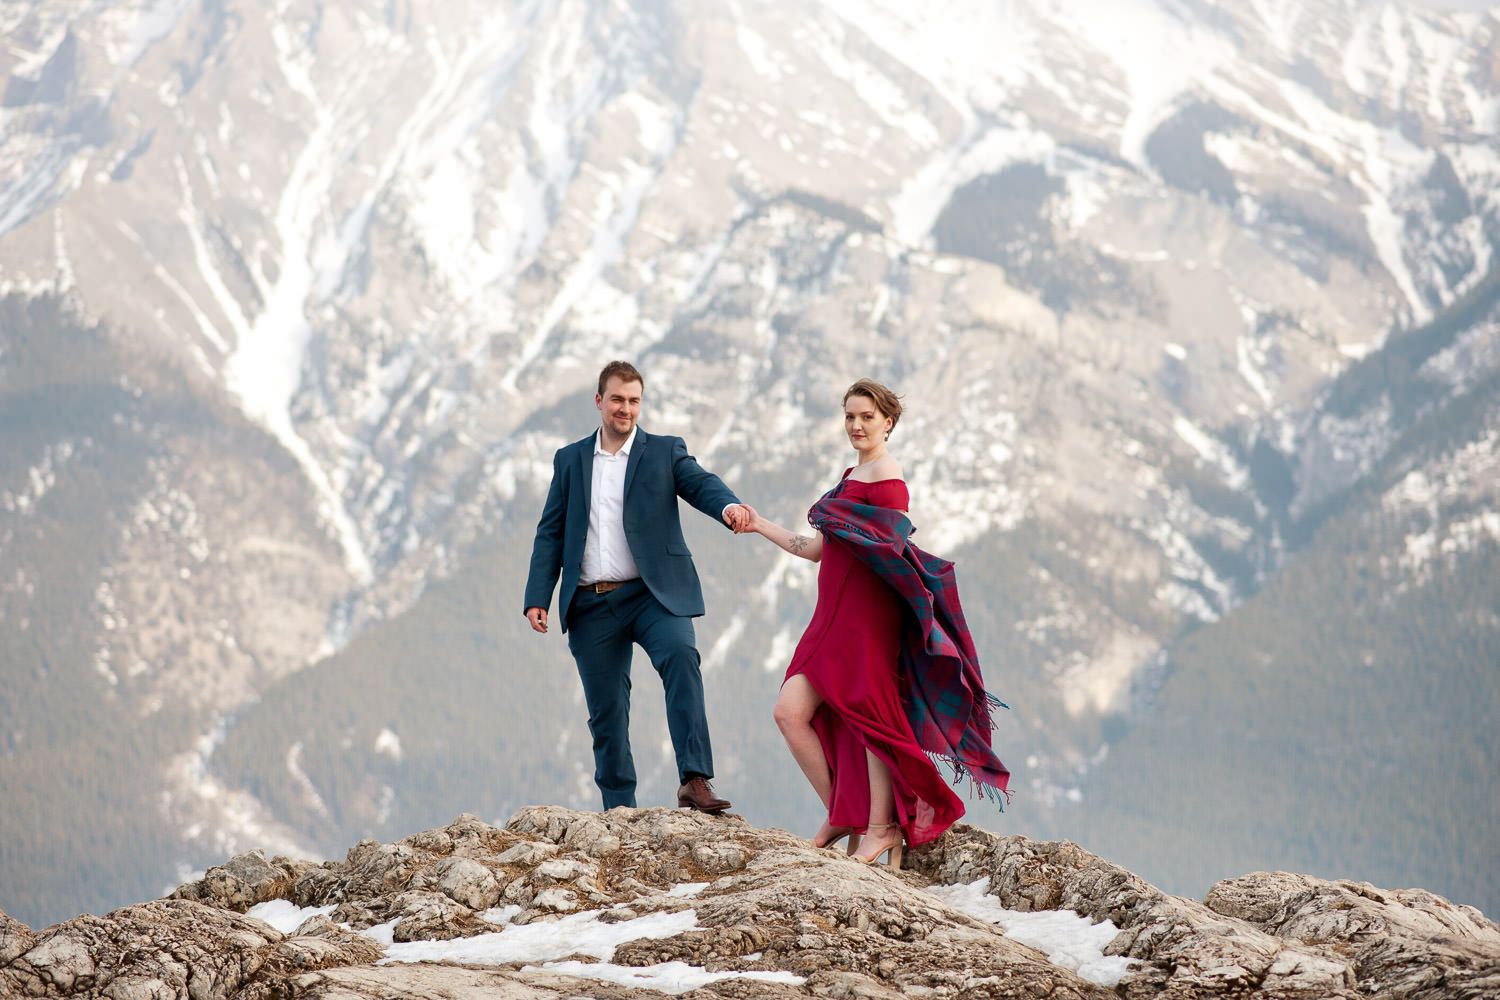 Winter engagement session in Banff National Park Calgary wedding photographer Tara Whittaker